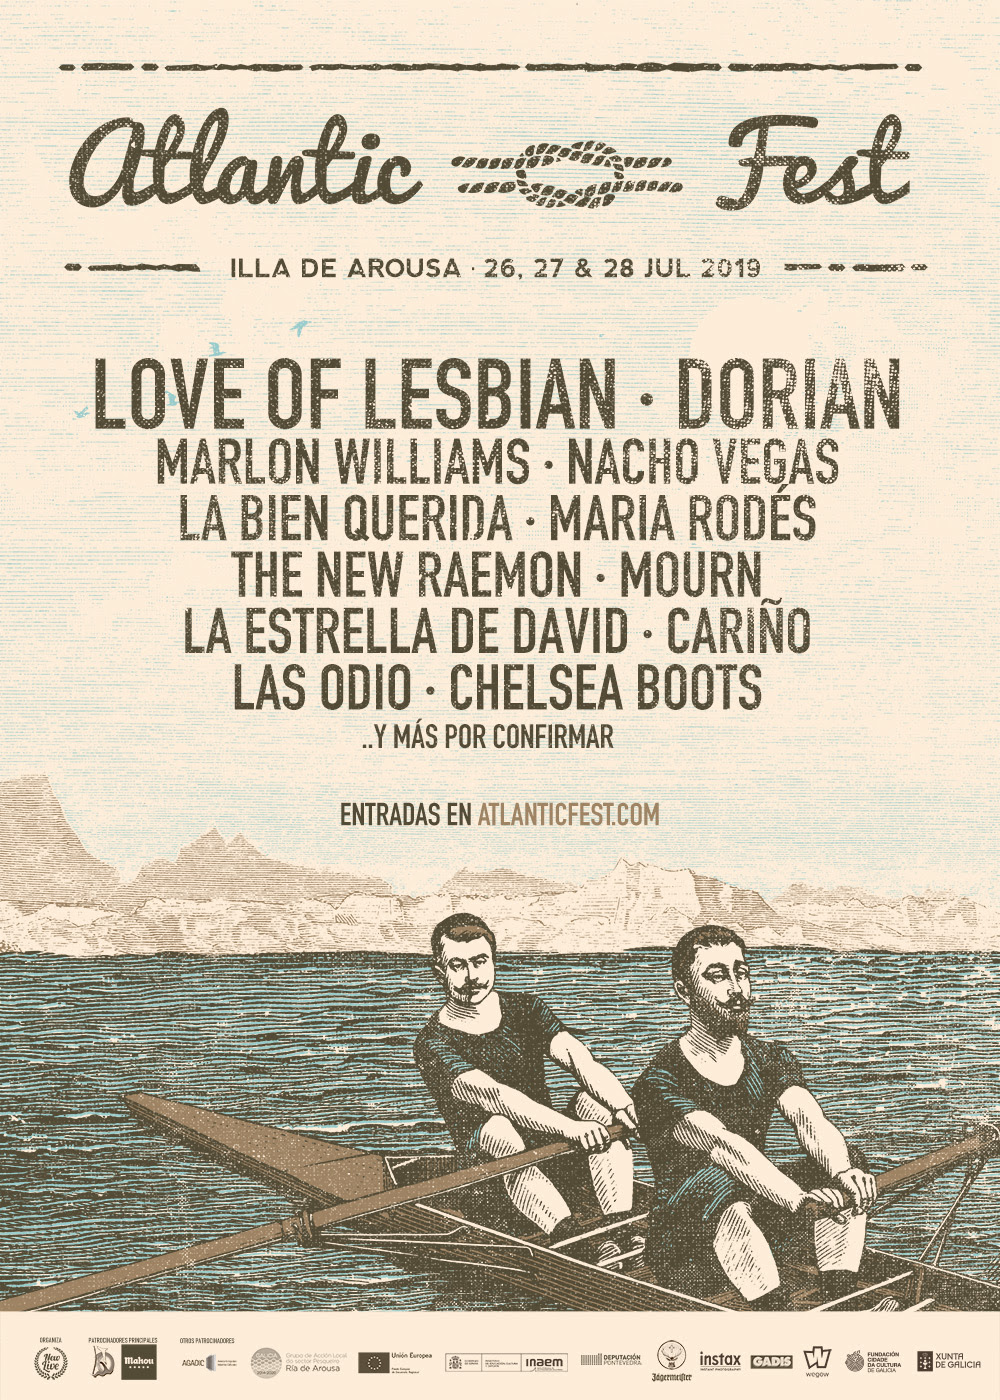 Dorian, The New Raemon, Mourn... éstas son las nuevas incorporaciones al Atlantic Fest